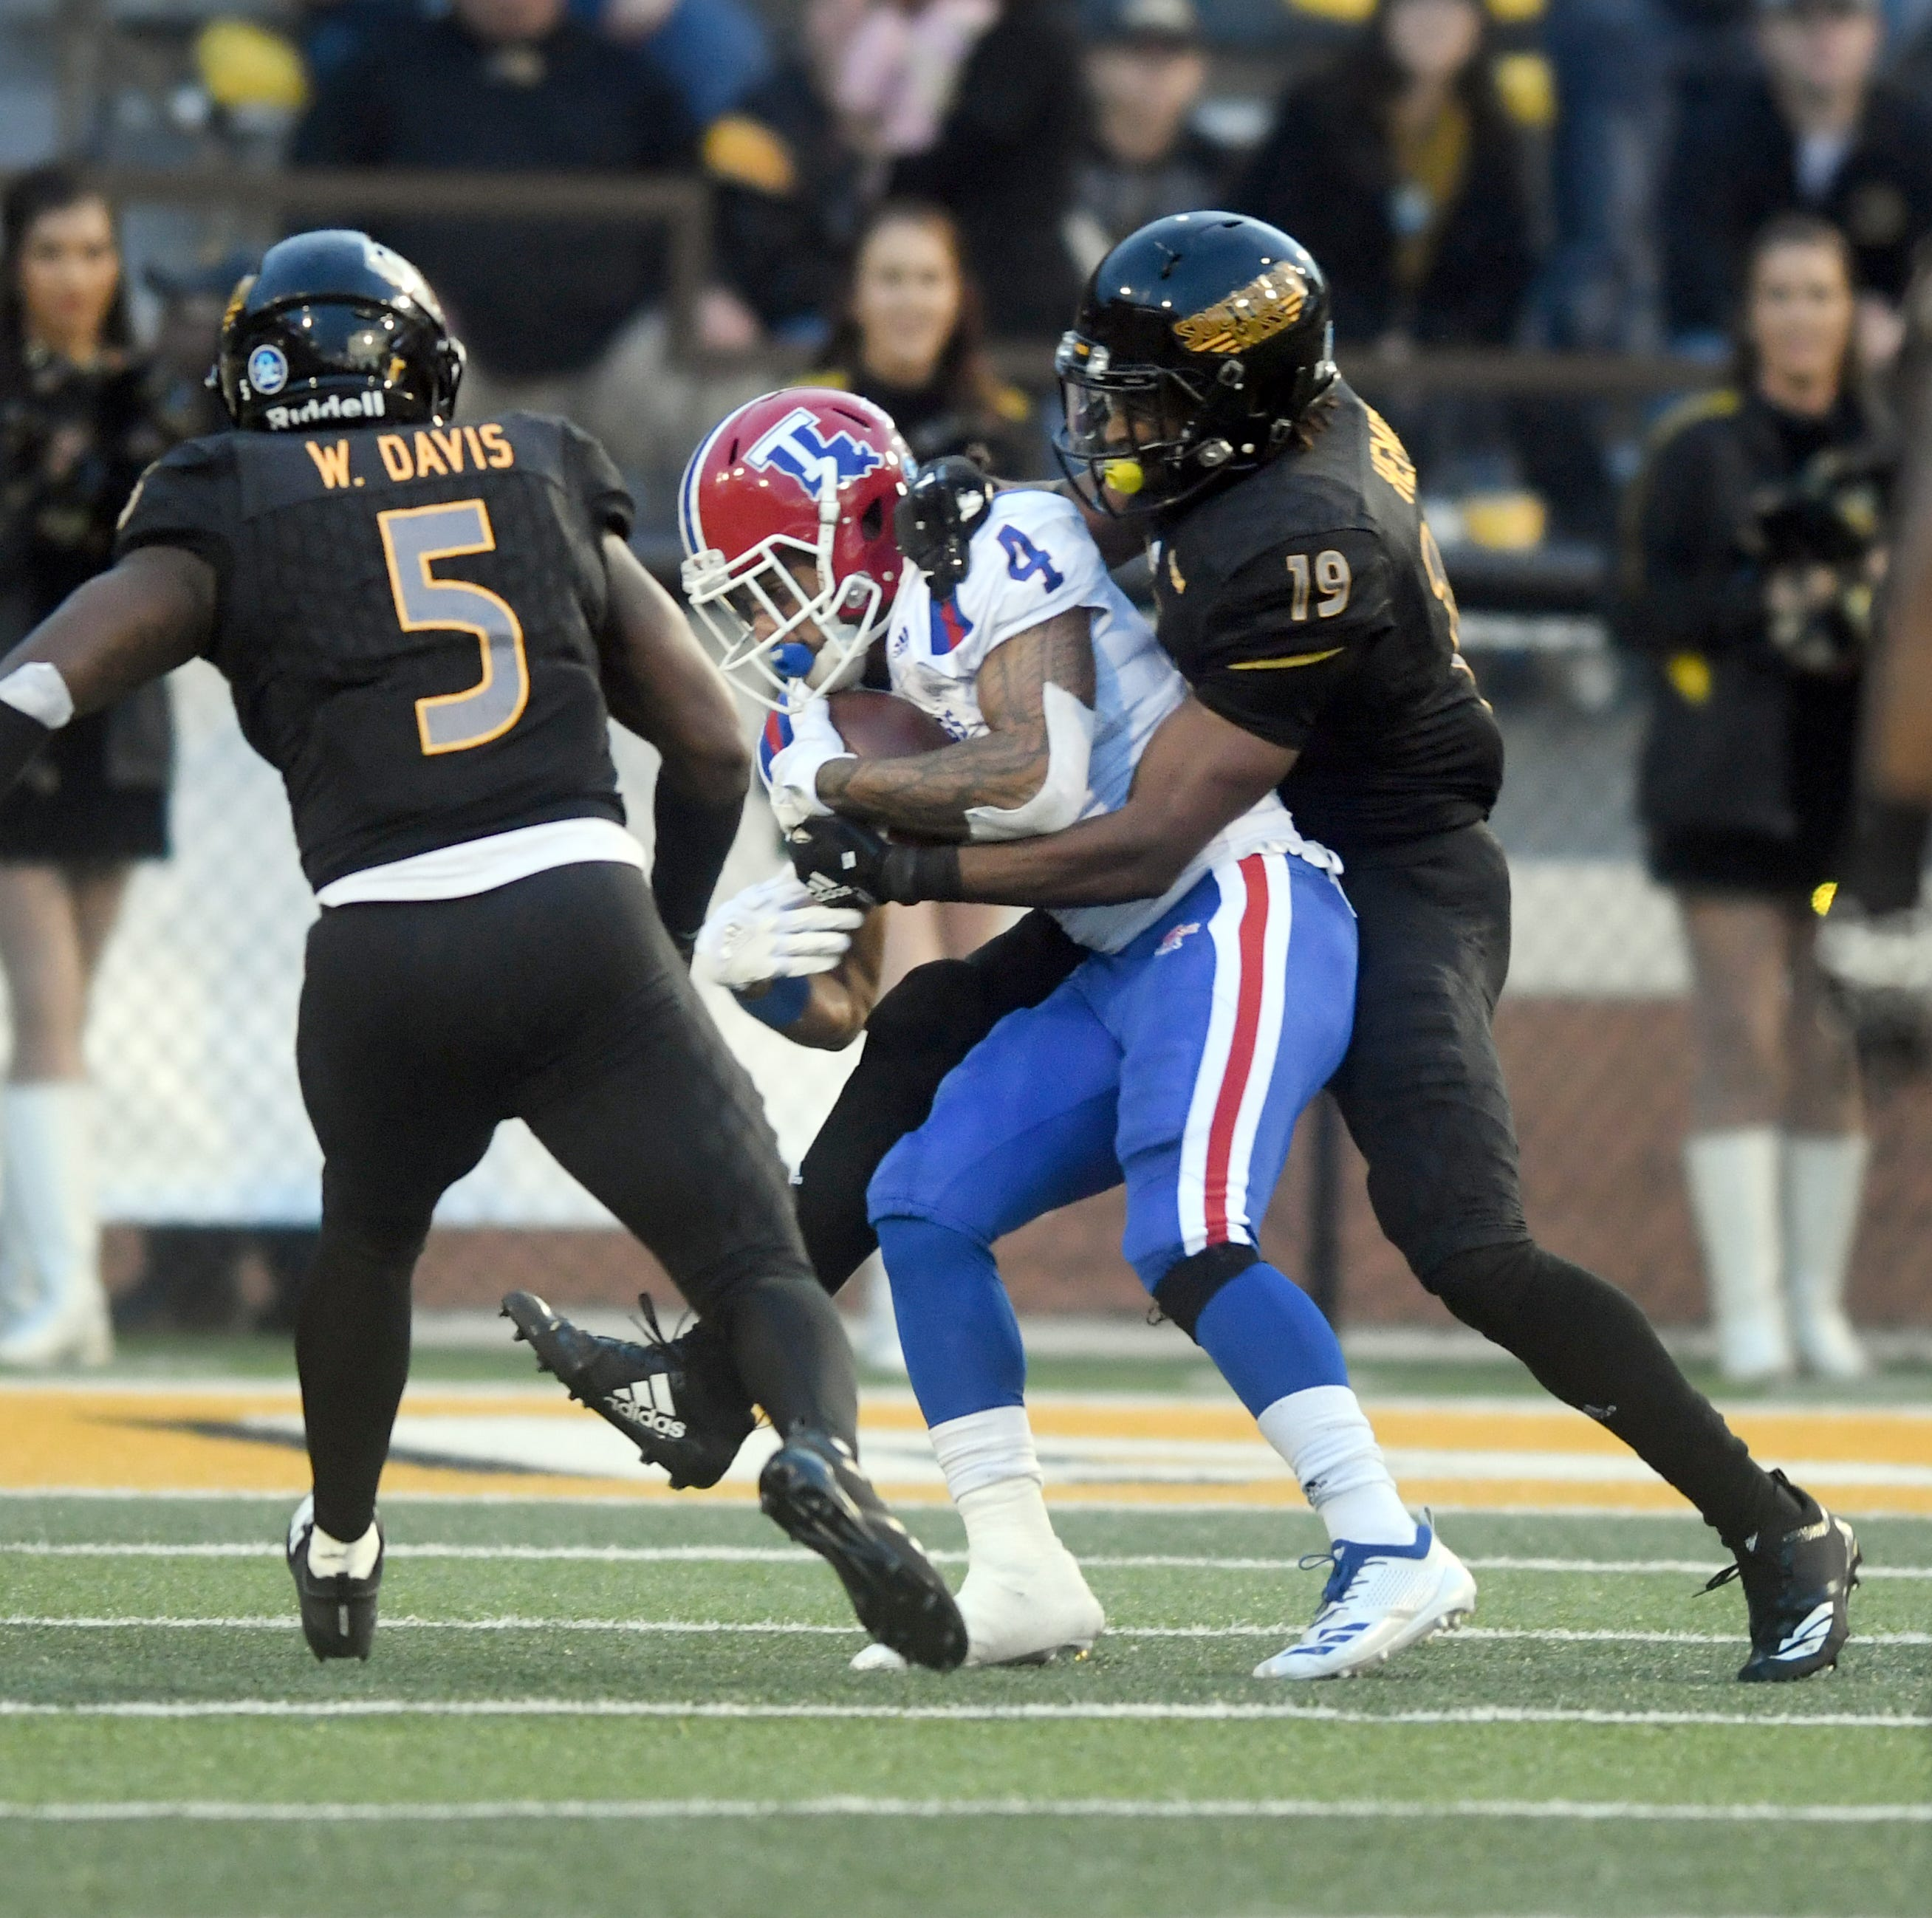 Commentary: LA Tech stalls in red zone in 2nd half, loses 4th straight to Southern Miss